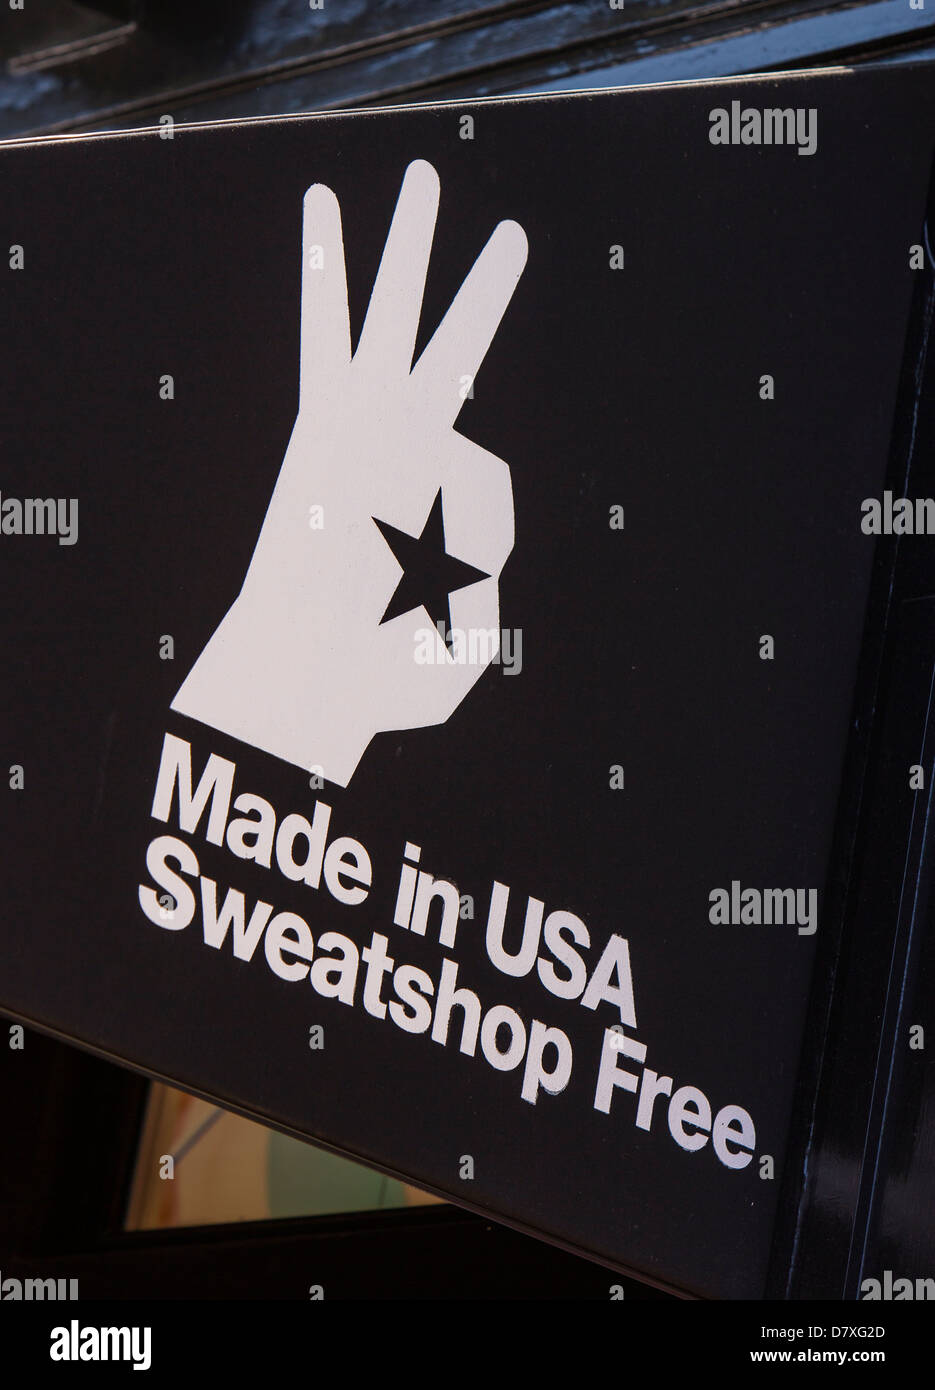 WASHINGTON, DC, USA - Made in USA Sweatshop Free sign at store on M Street in Georgetown neighborhood. - Stock Image